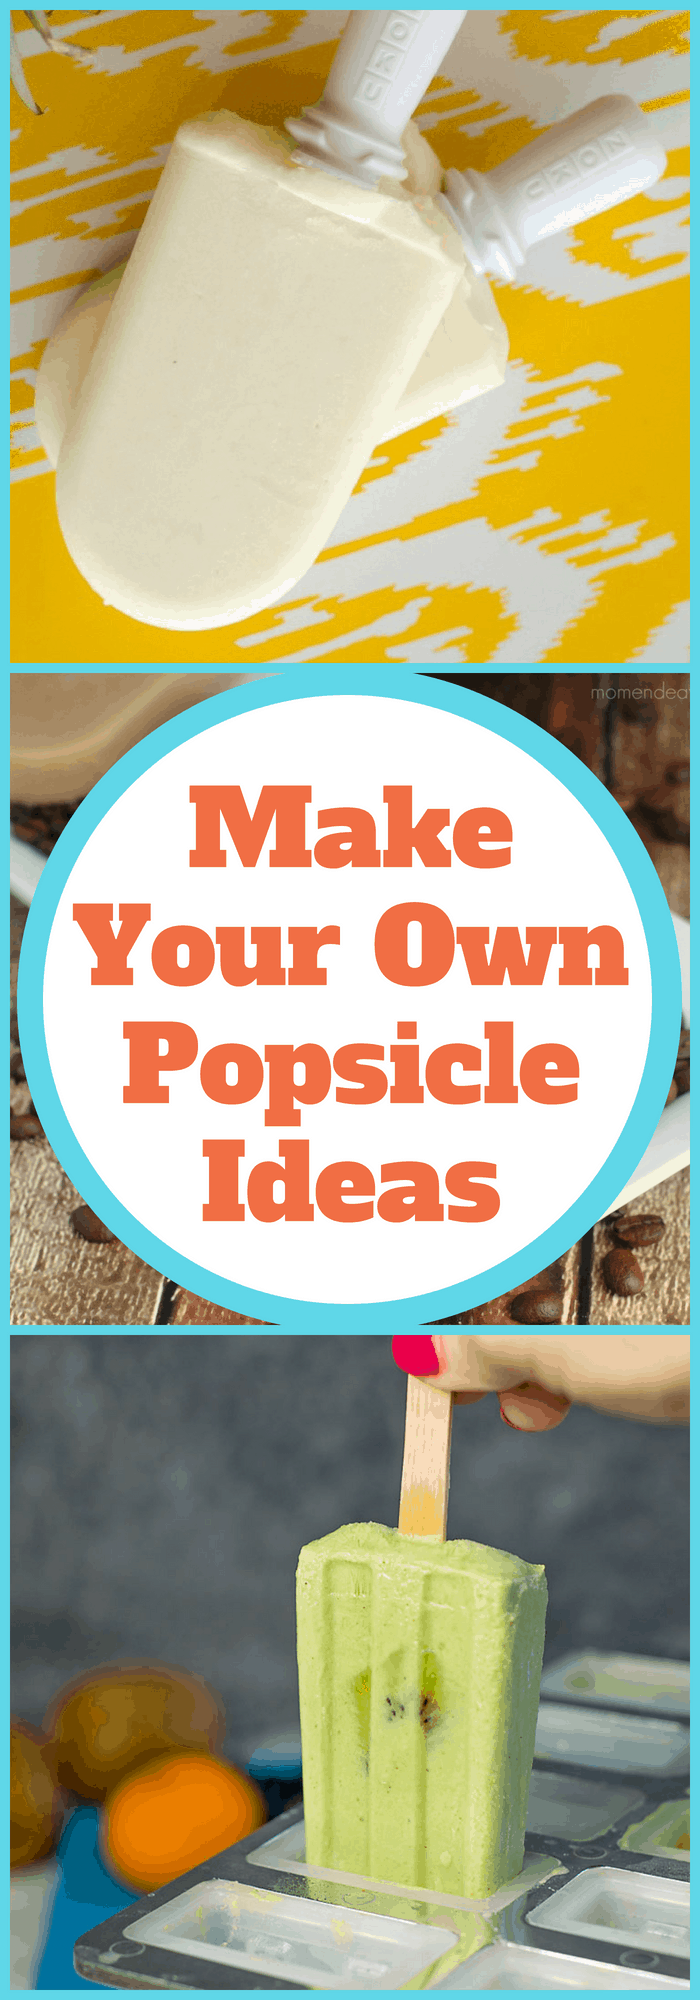 Make Your Own Popsicle Ideas